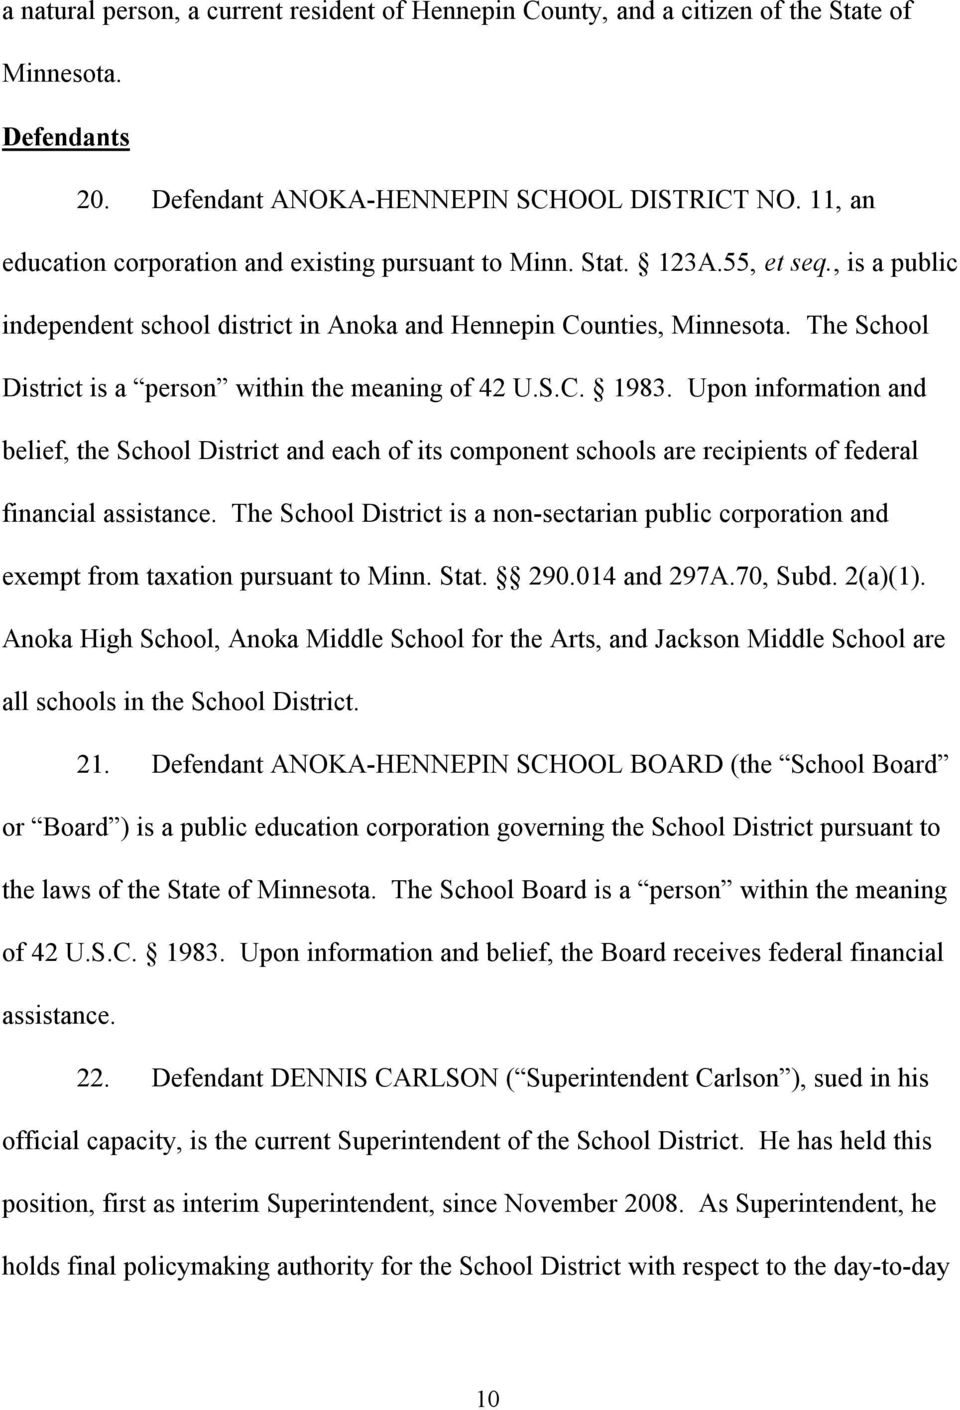 The School District is a person within the meaning of 42 U.S.C. 1983. Upon information and belief, the School District and each of its component schools are recipients of federal financial assistance.